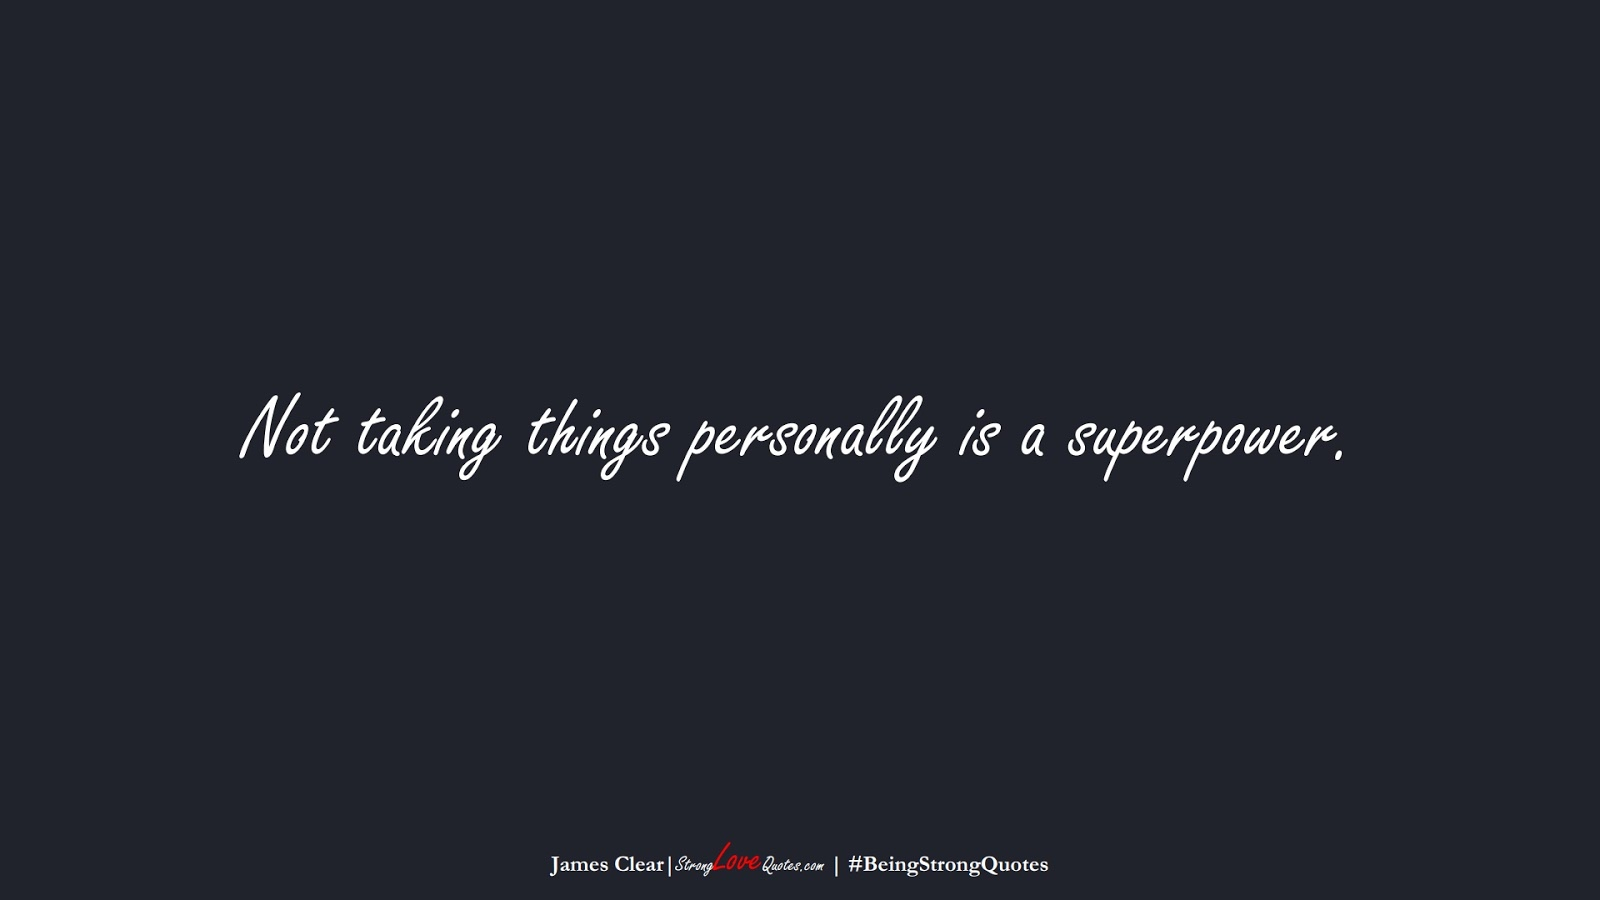 Not taking things personally is a superpower. (James Clear);  #BeingStrongQuotes